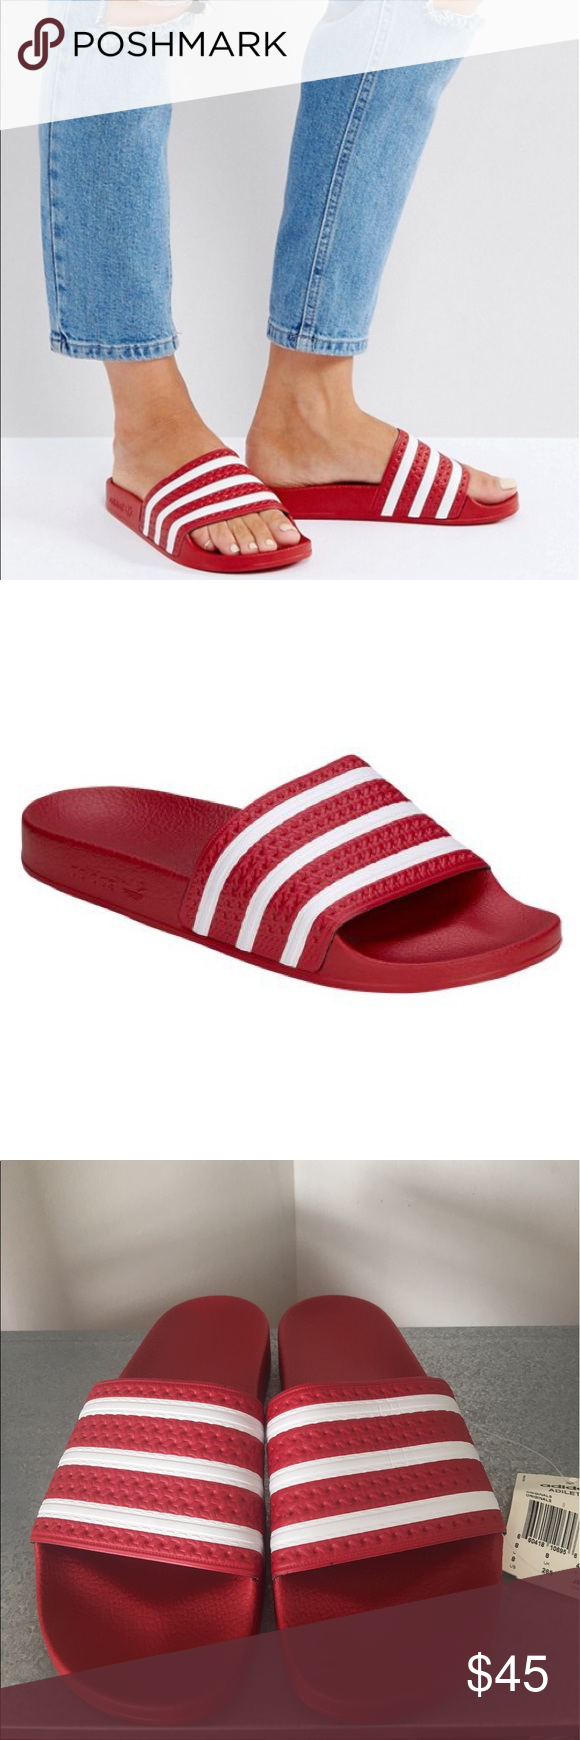 best sneakers c6804 96b3d SOLD Adidas Original Adilette Slides Red M 8 W 10 NWT  My Po